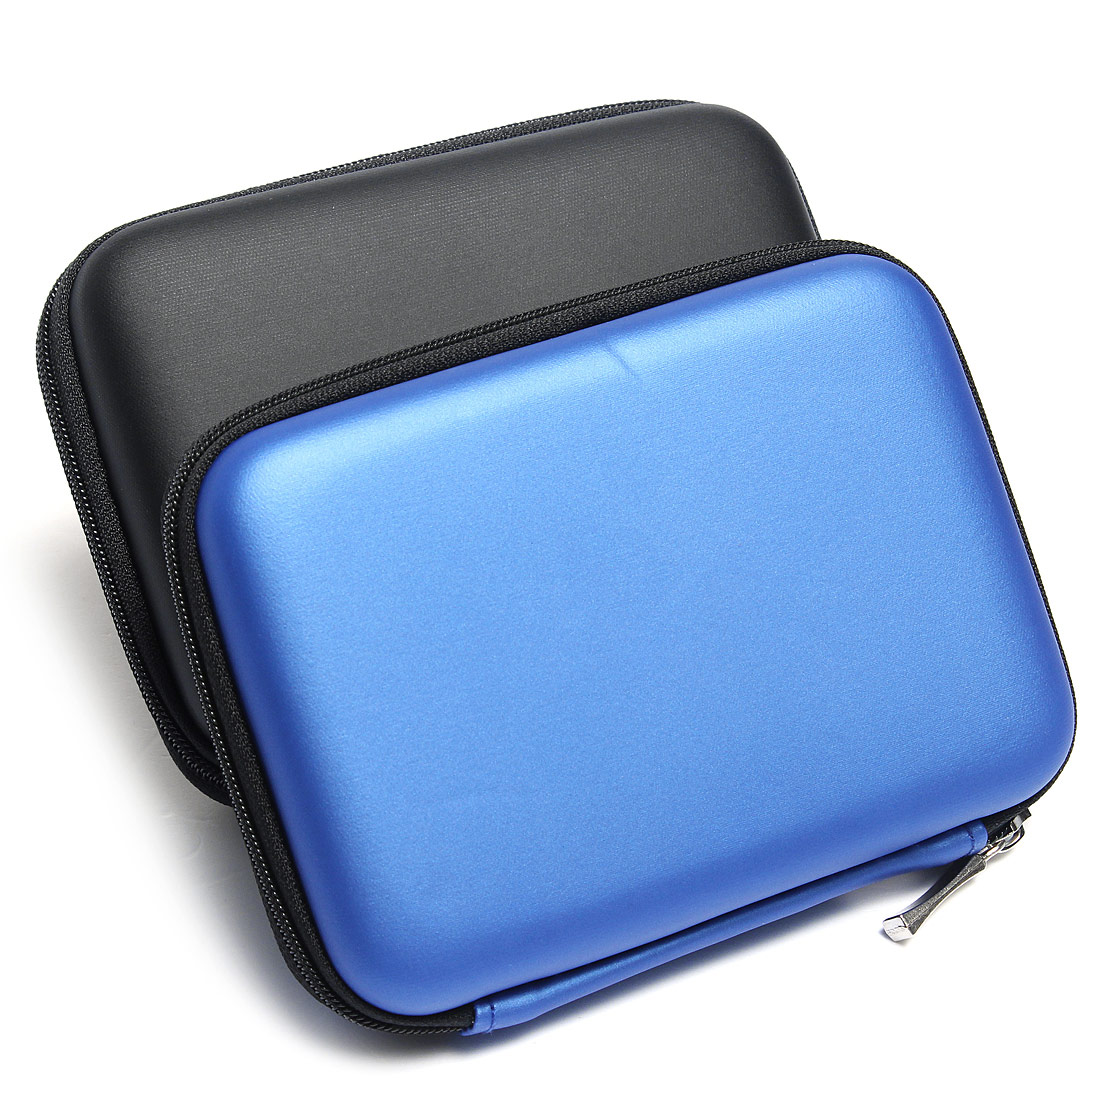 Shell Pouch Carry Case For 2.5 Inch External Hard Disk